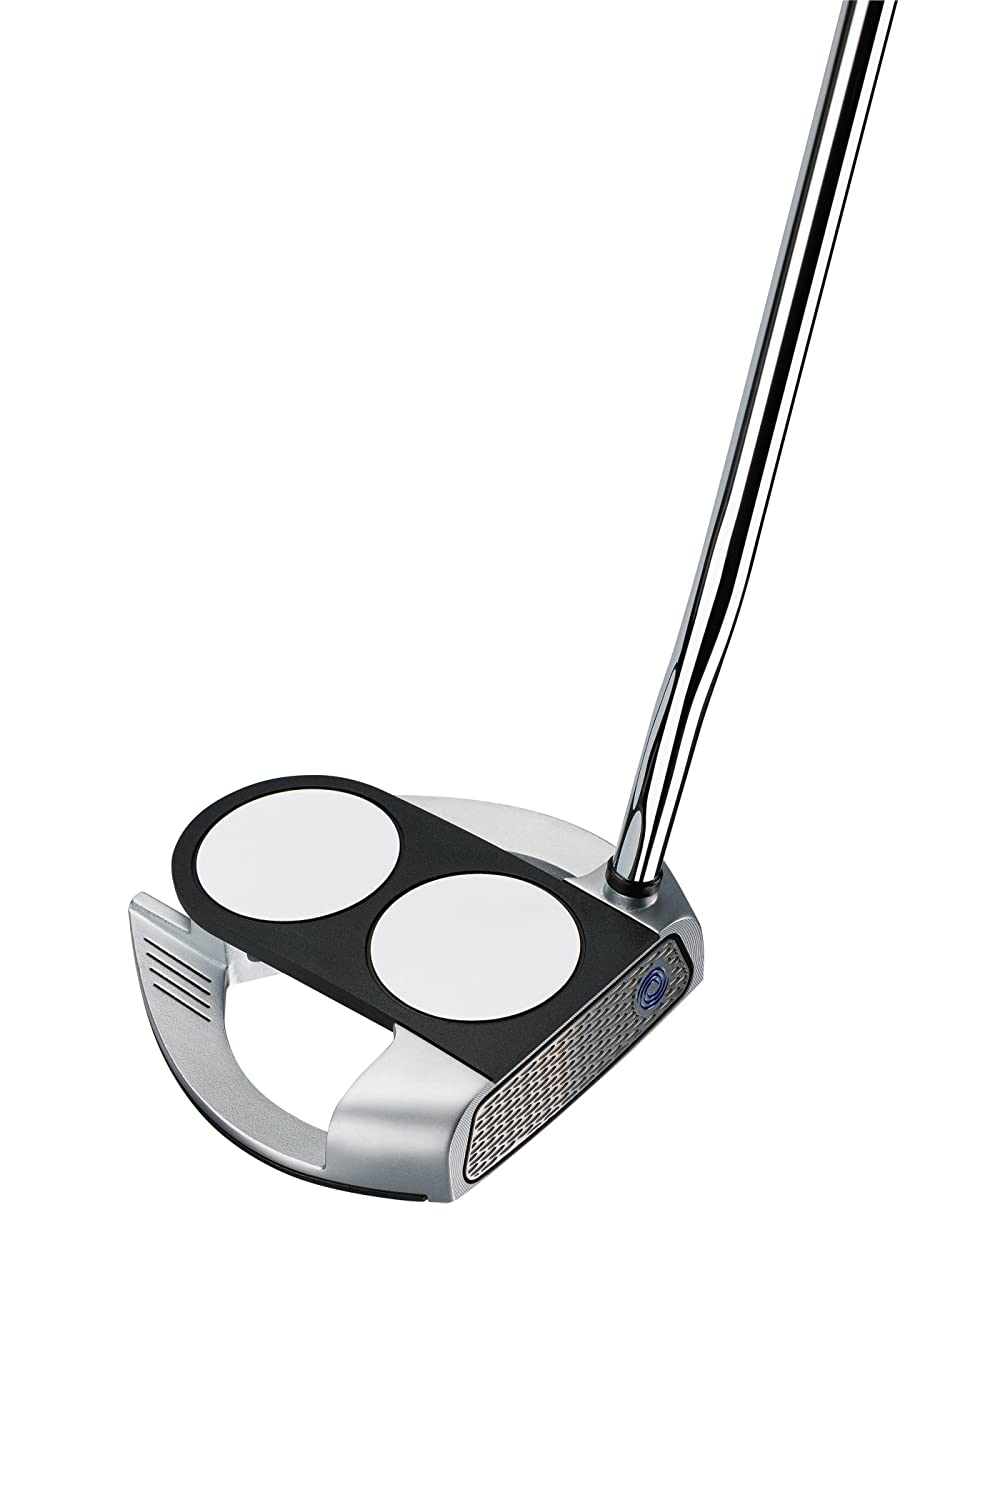 The Best Golf Putter 1